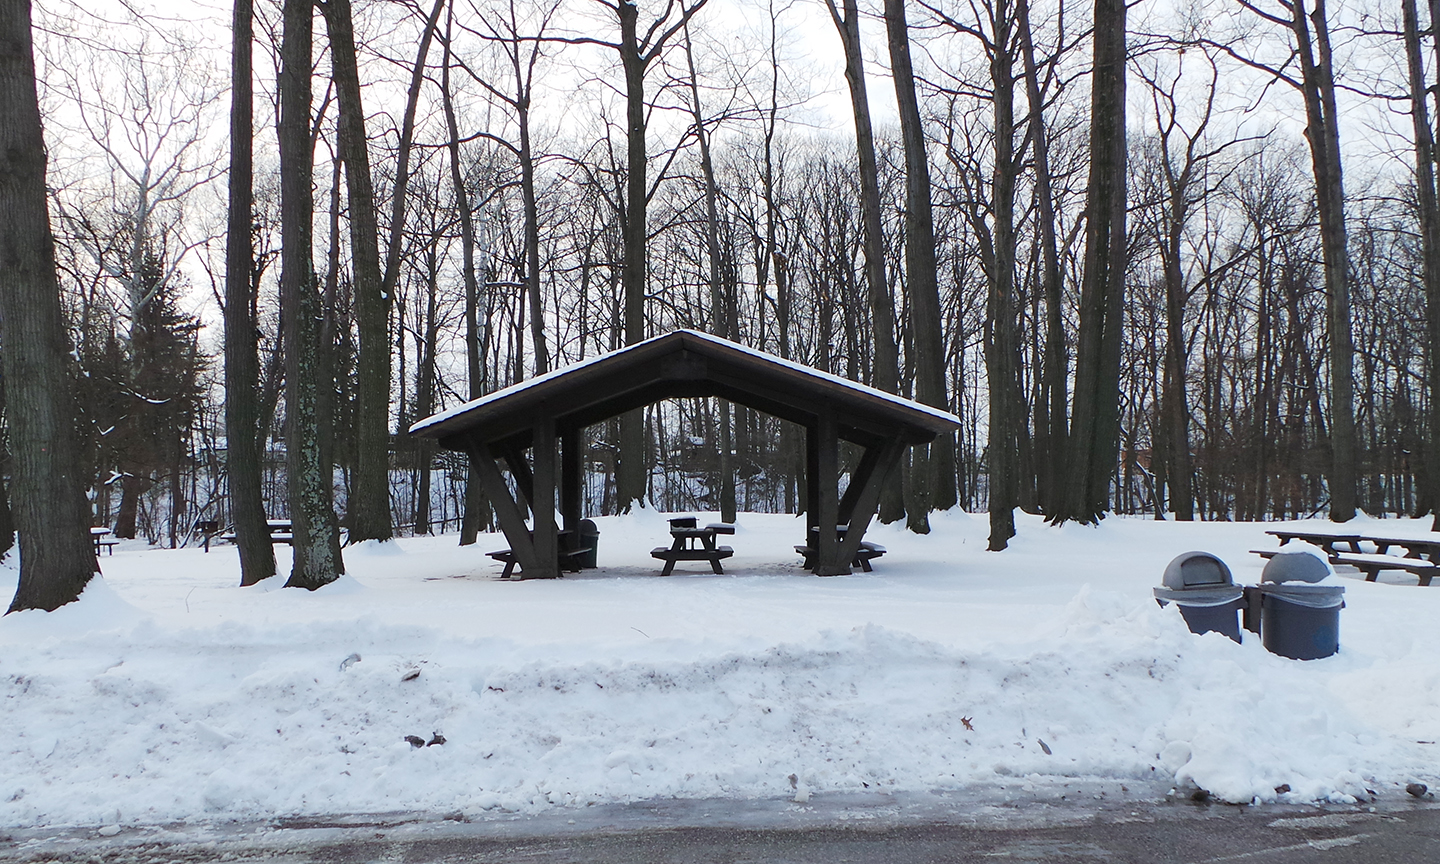 Lower Fern Hill Picnic Area